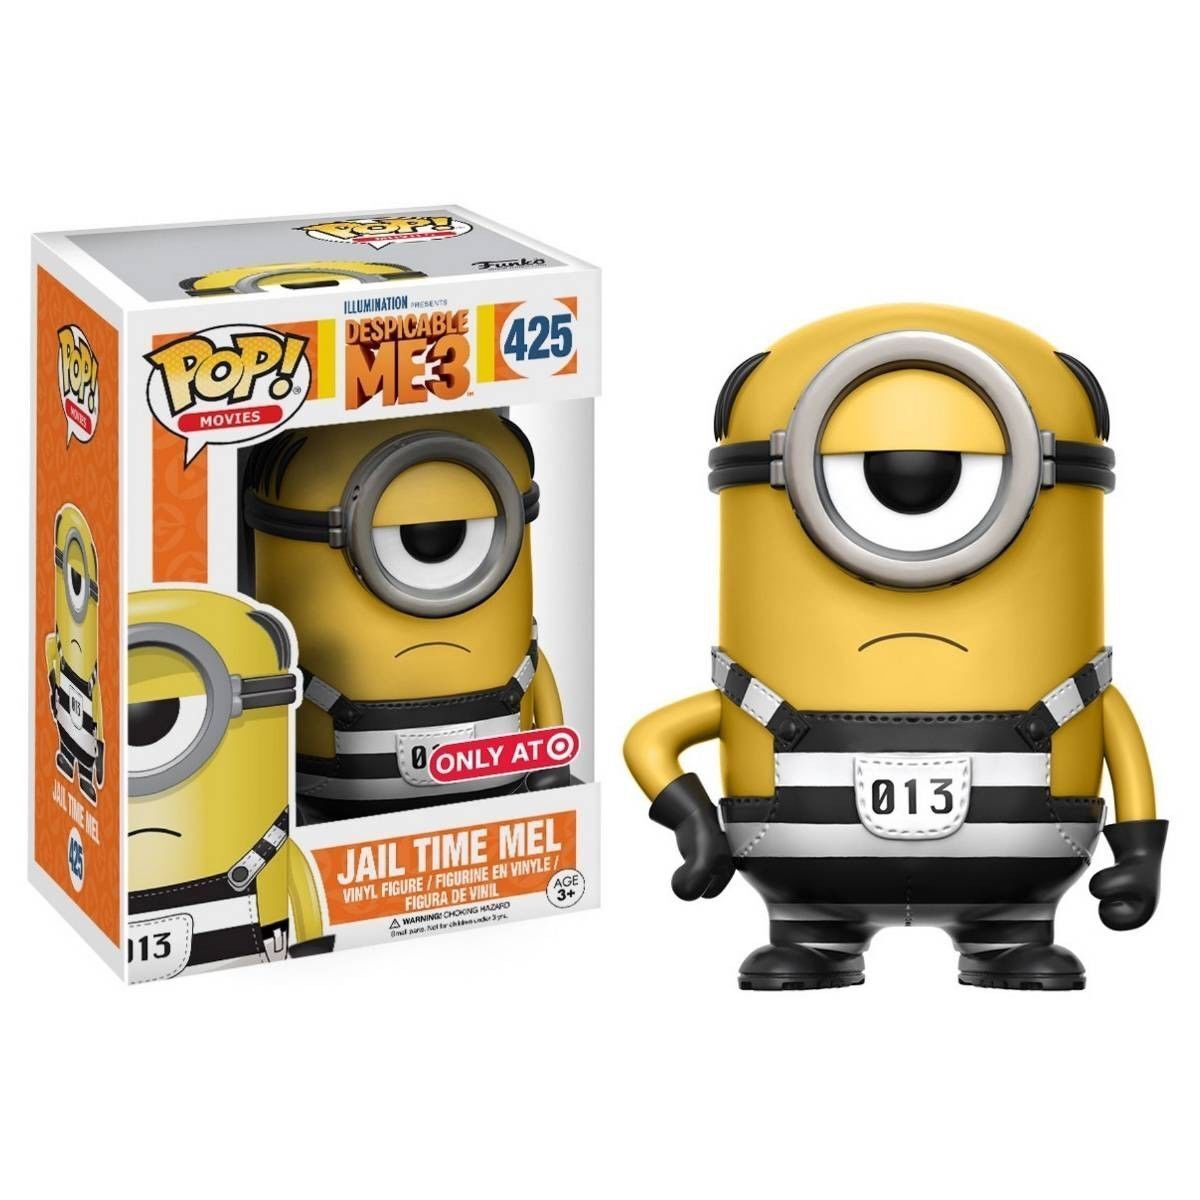 FUNKO POP MOVIES DESPICABLE ME 3  425 JAIL TIME MELTARGET EXCLUSIVEFAST POST